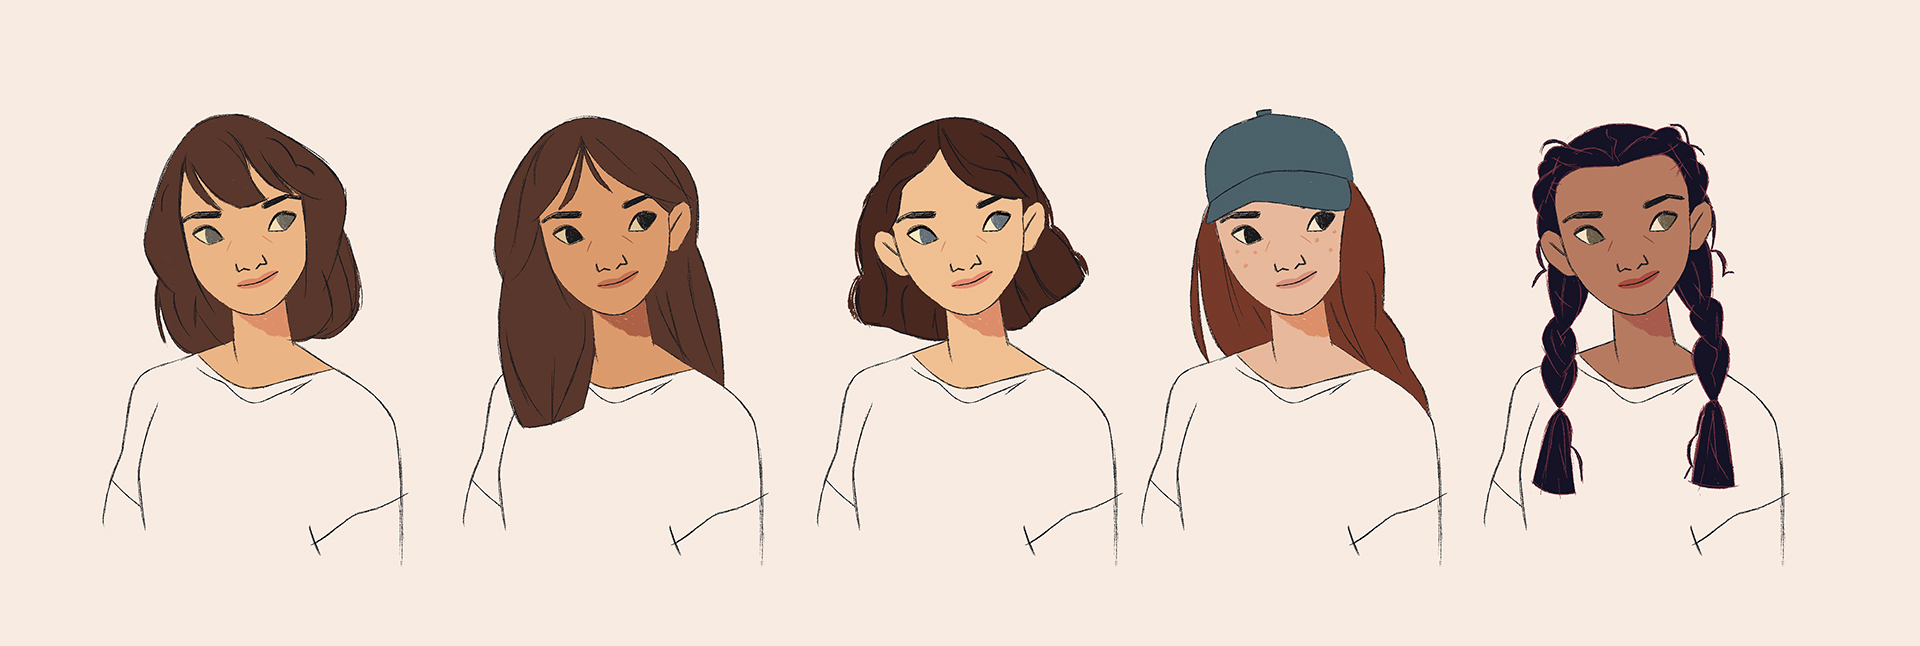 tom-goyon-hairstyles-character